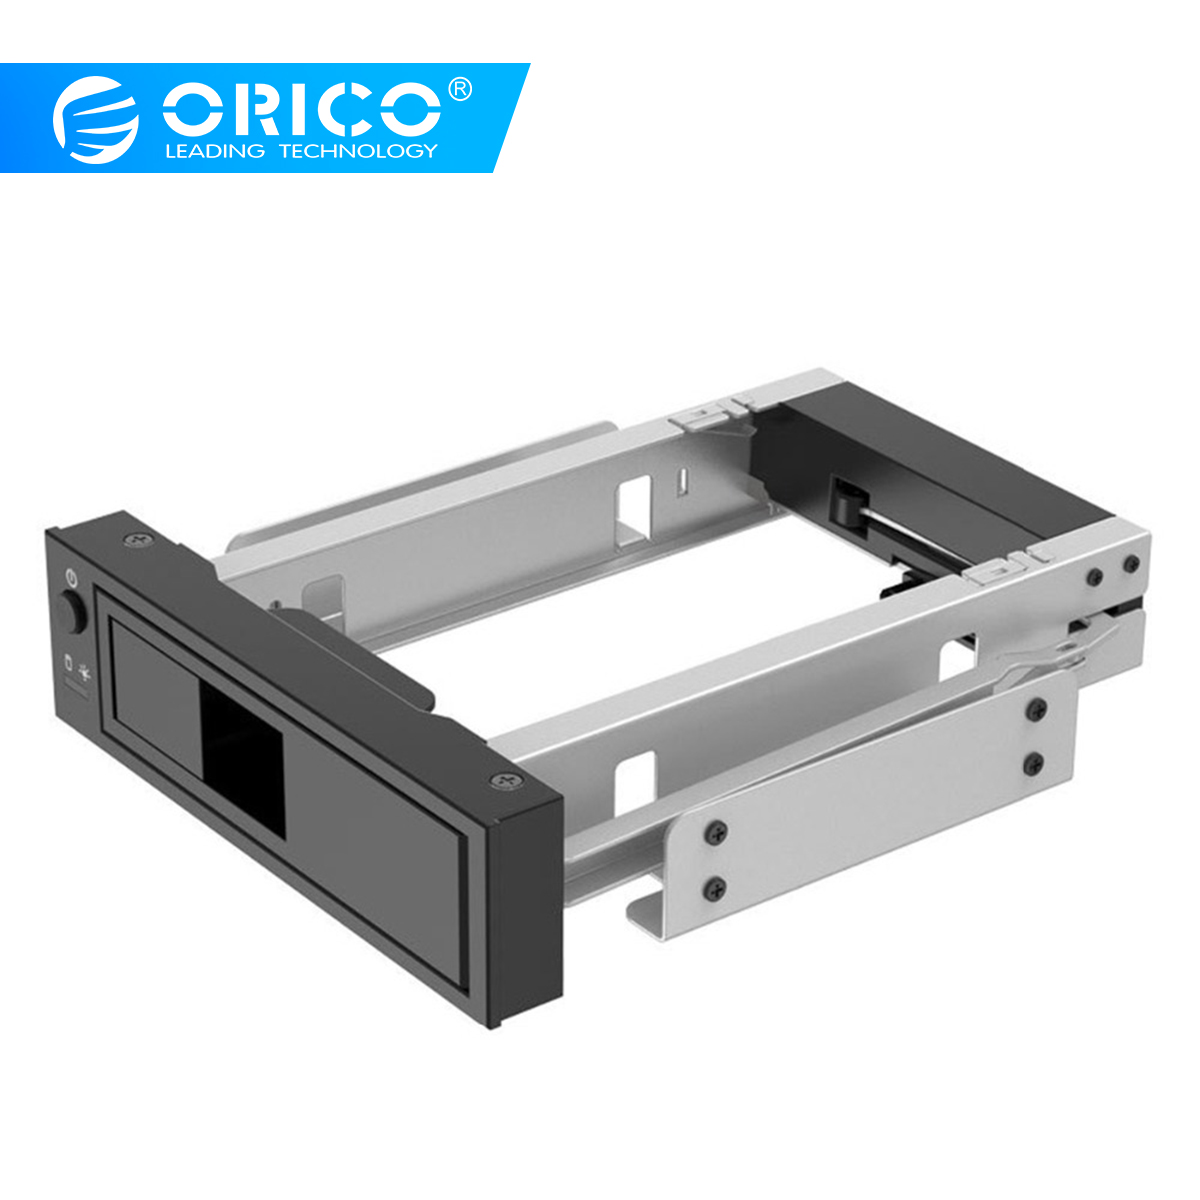 3.5 inch SATA HDD Frame Mobile Rack Internal HDD Case CD-ROM Space Tool Free Design Support MAX 6TB (1106SS)3.5 inch SATA HDD Frame Mobile Rack Internal HDD Case CD-ROM Space Tool Free Design Support MAX 6TB (1106SS)